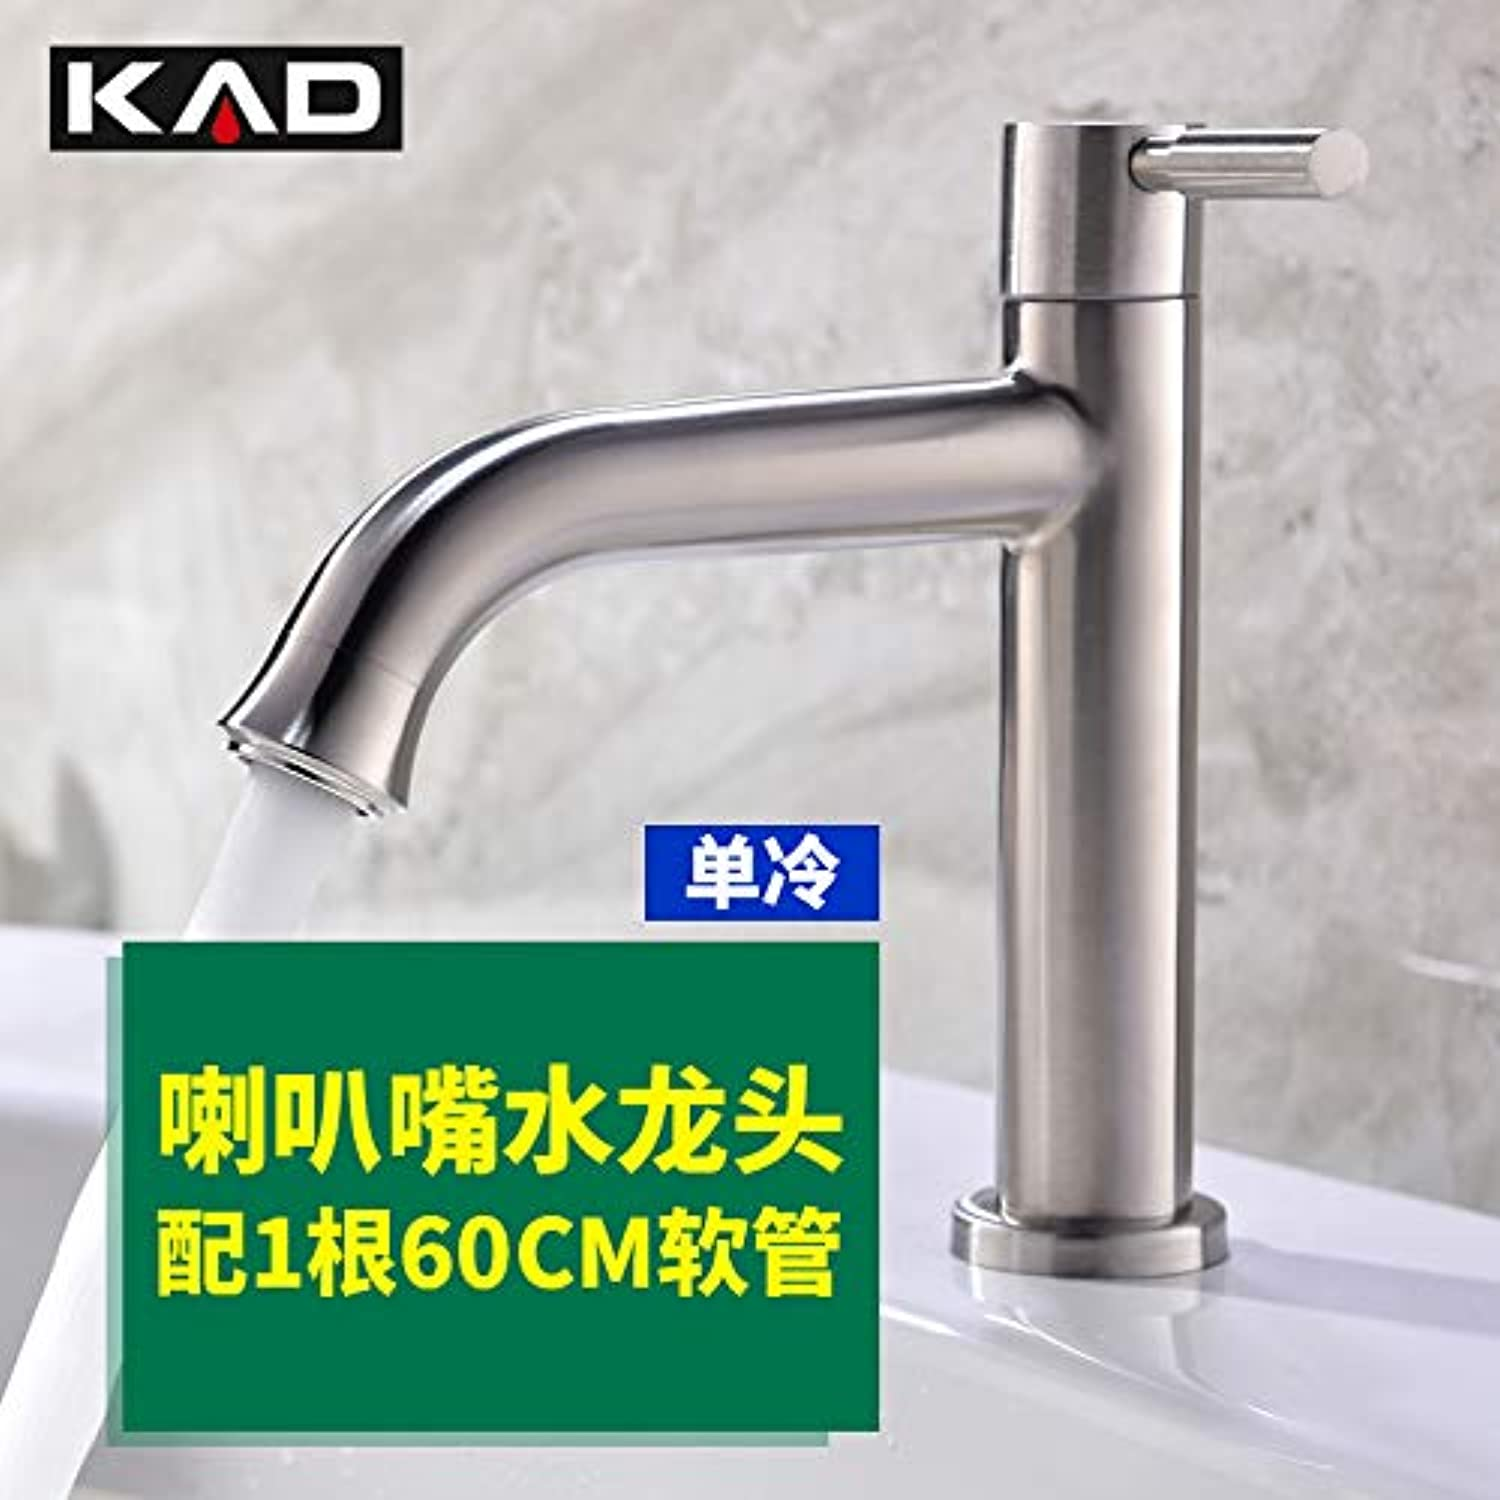 Hlluya Professional Sink Mixer Tap Kitchen Faucet One cold water faucet basin wash basins wash-basin sinks table basin SINGLE LEVER SINGLE HOLE, the horn tip single cold basin +60CM Hose